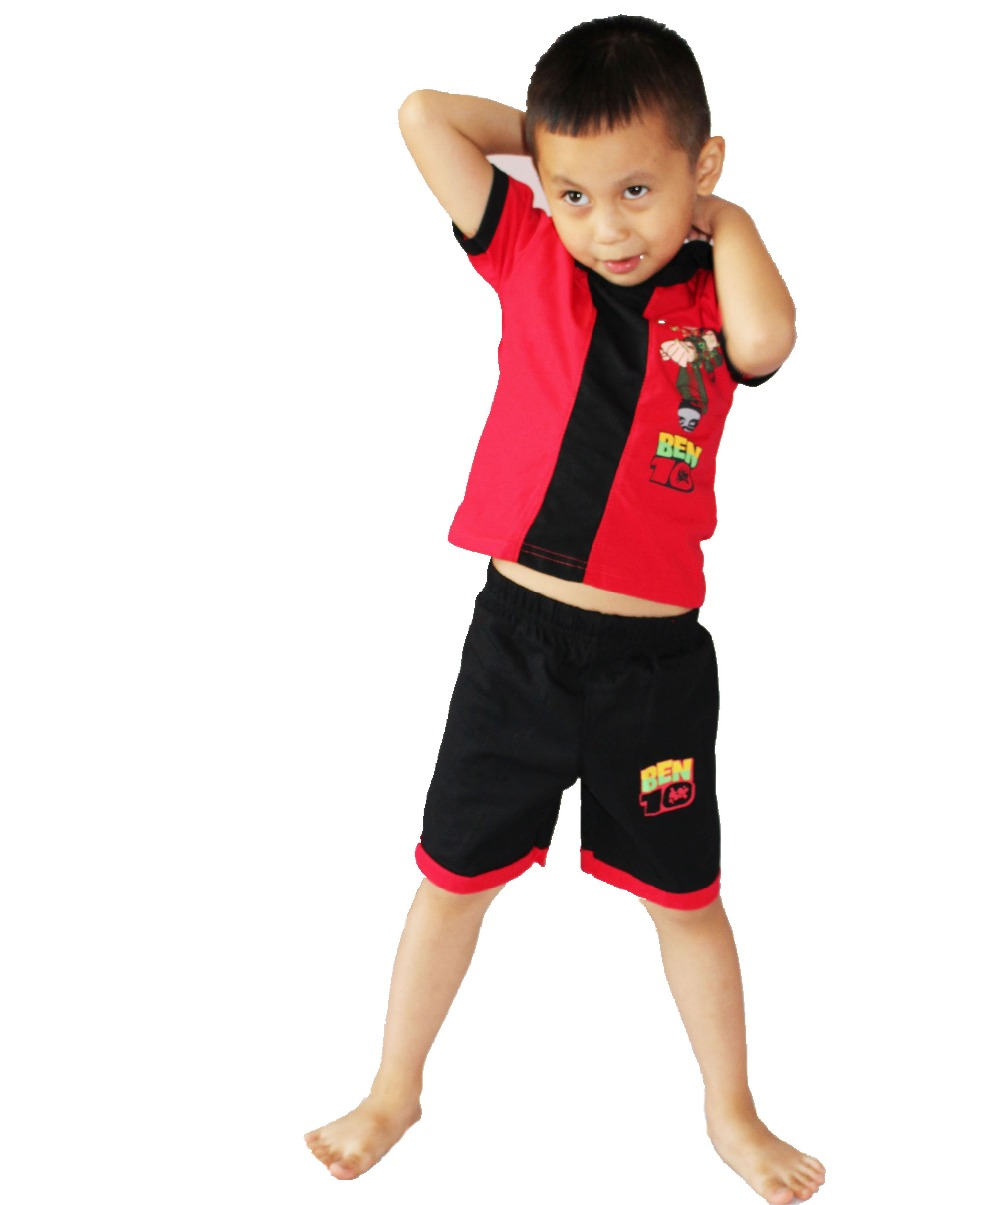 Red Short Sleeves Cotton BEN-10 Cosplay Baby Kid Clothes 2 Suit Clothing Role-playing Boy Leisure Wear